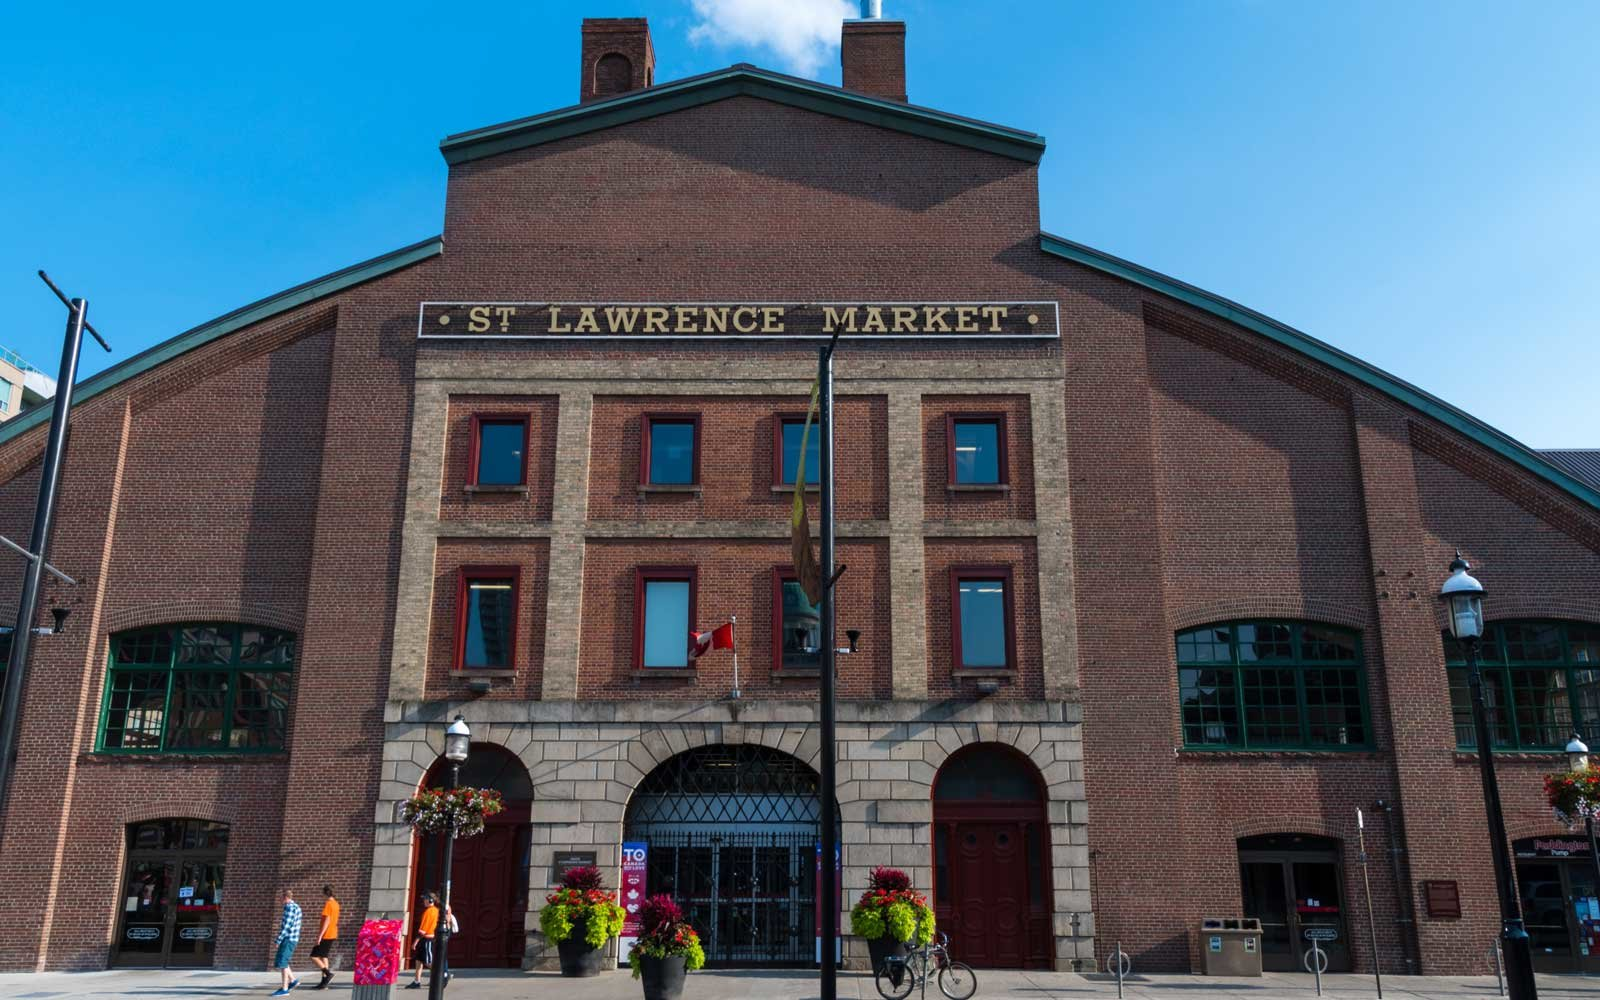 Saint Lawrence Market Facade in Old Toronto